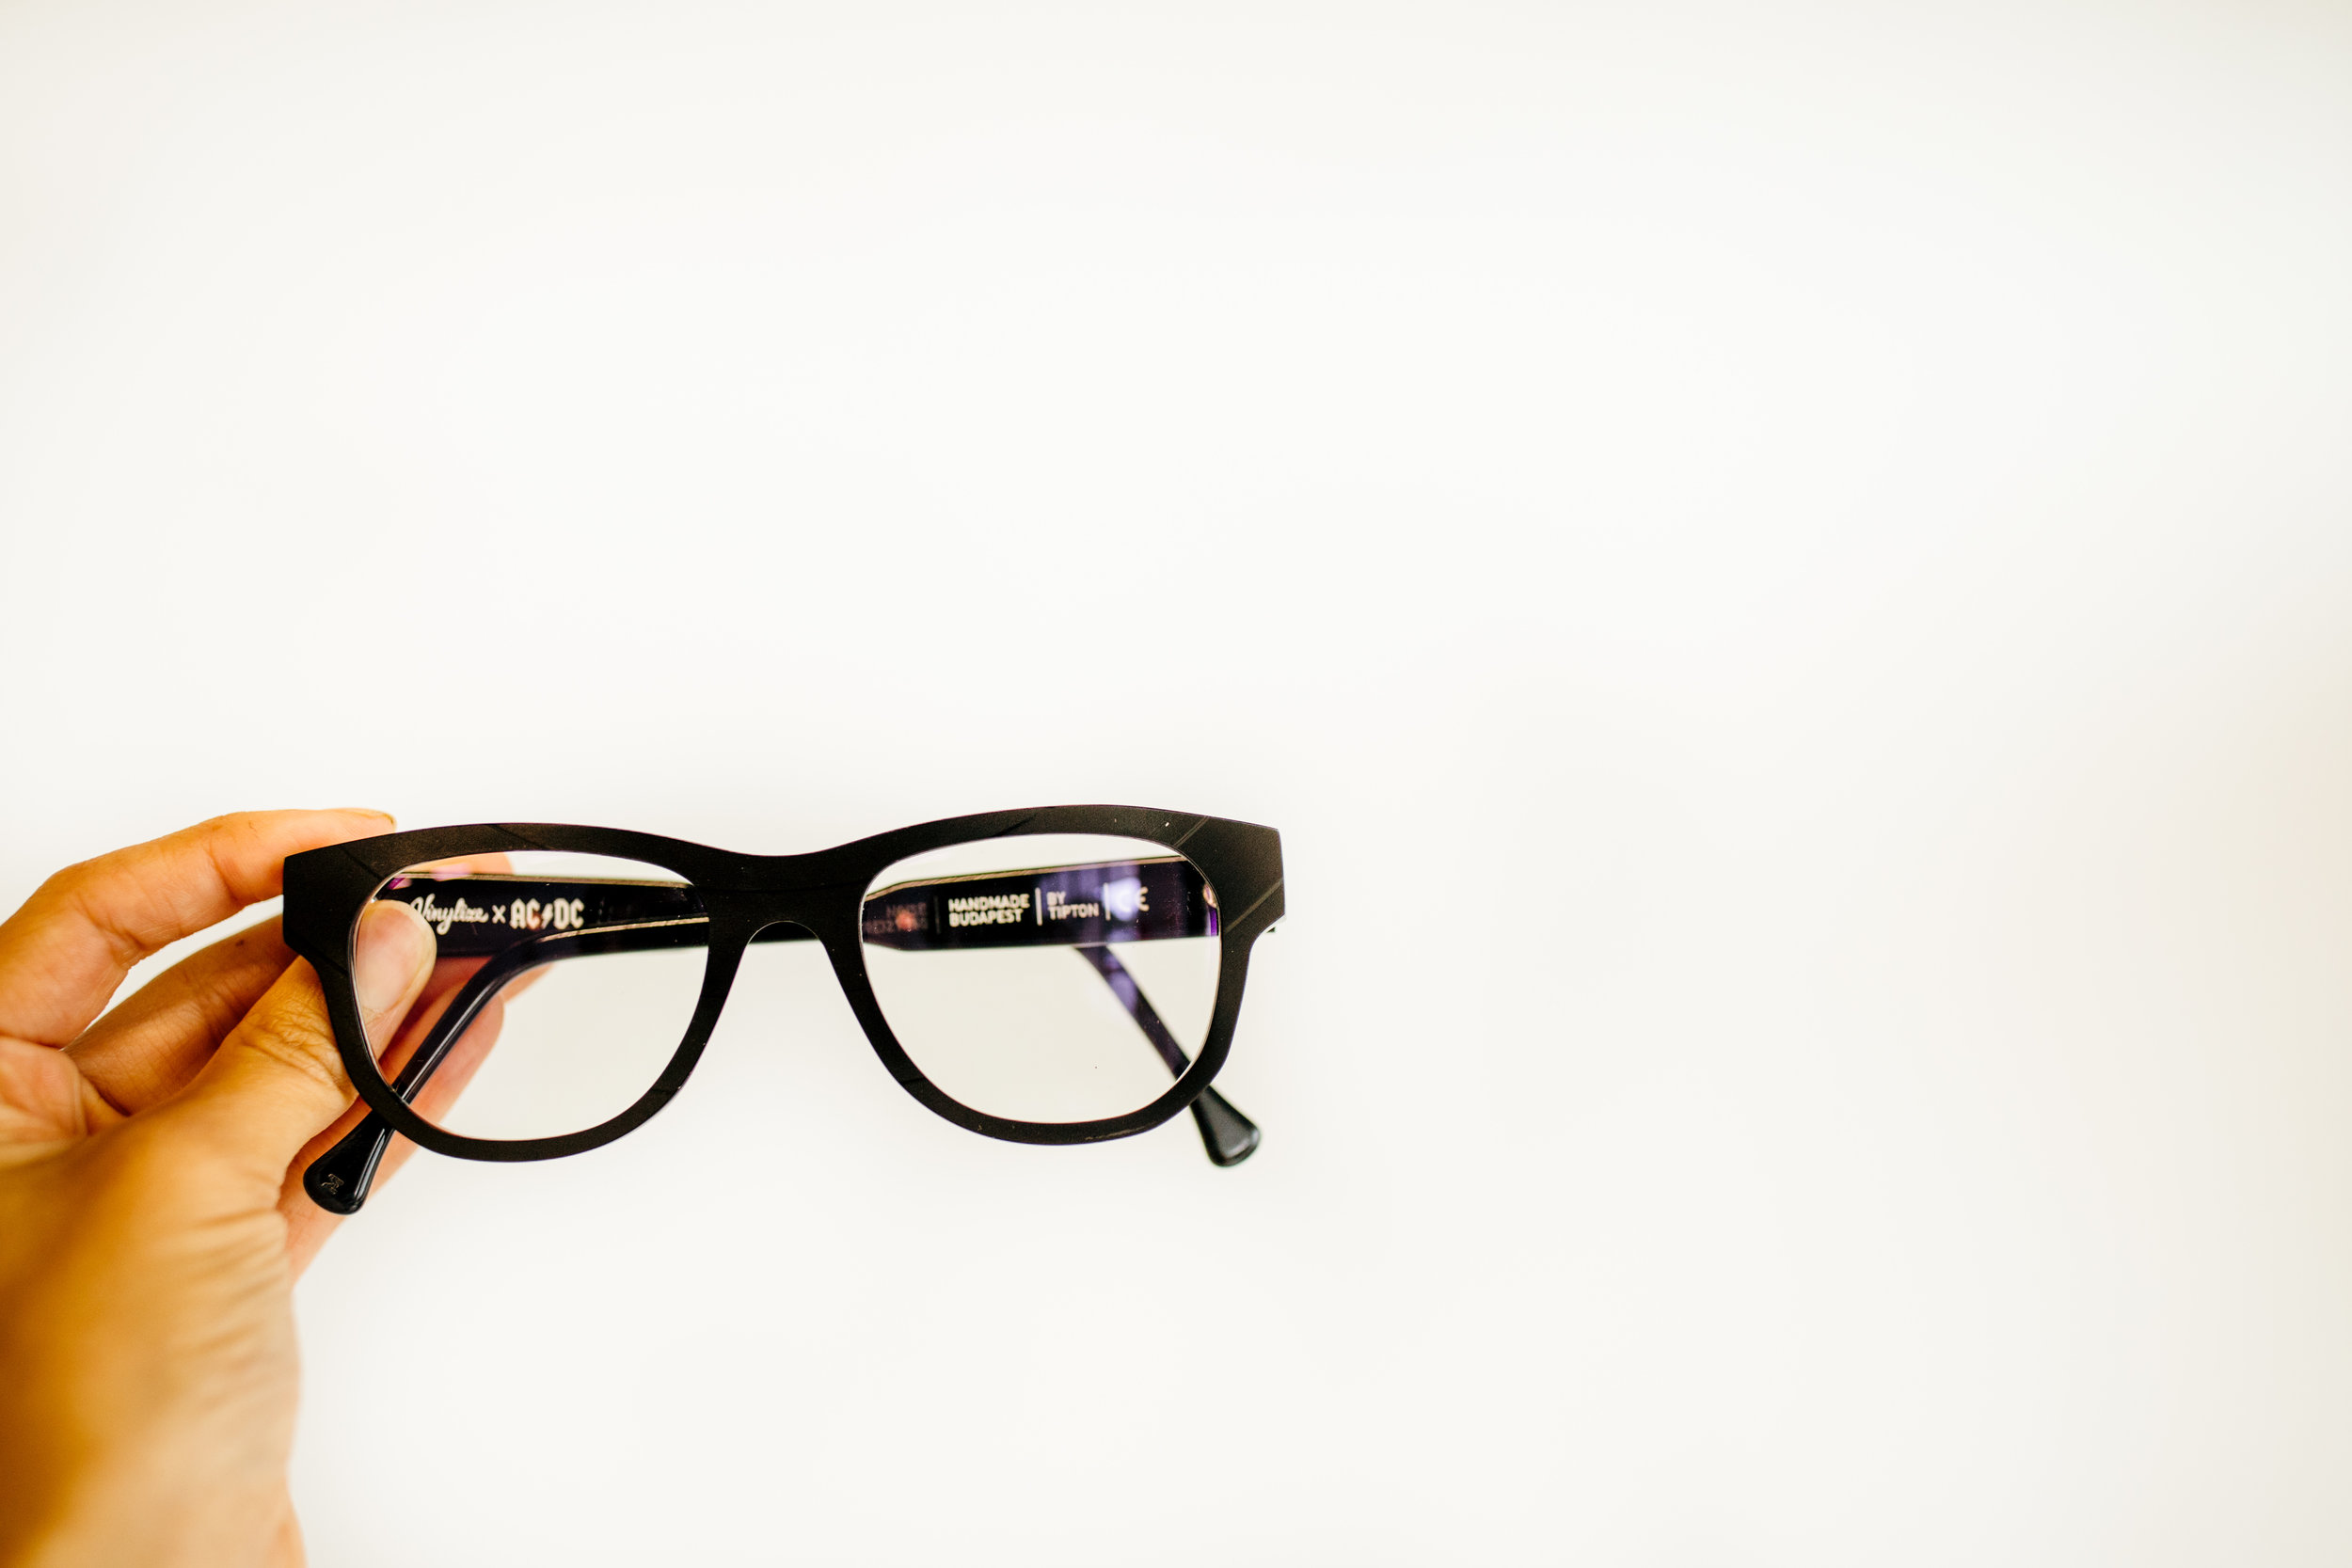 Our Frame Brands - We ONLY carry independent frame lines, small companies with ethical manufacturing processes that make charitable contributions. It's what we believe in so we want our frames to not only look good but help make the world a better place!